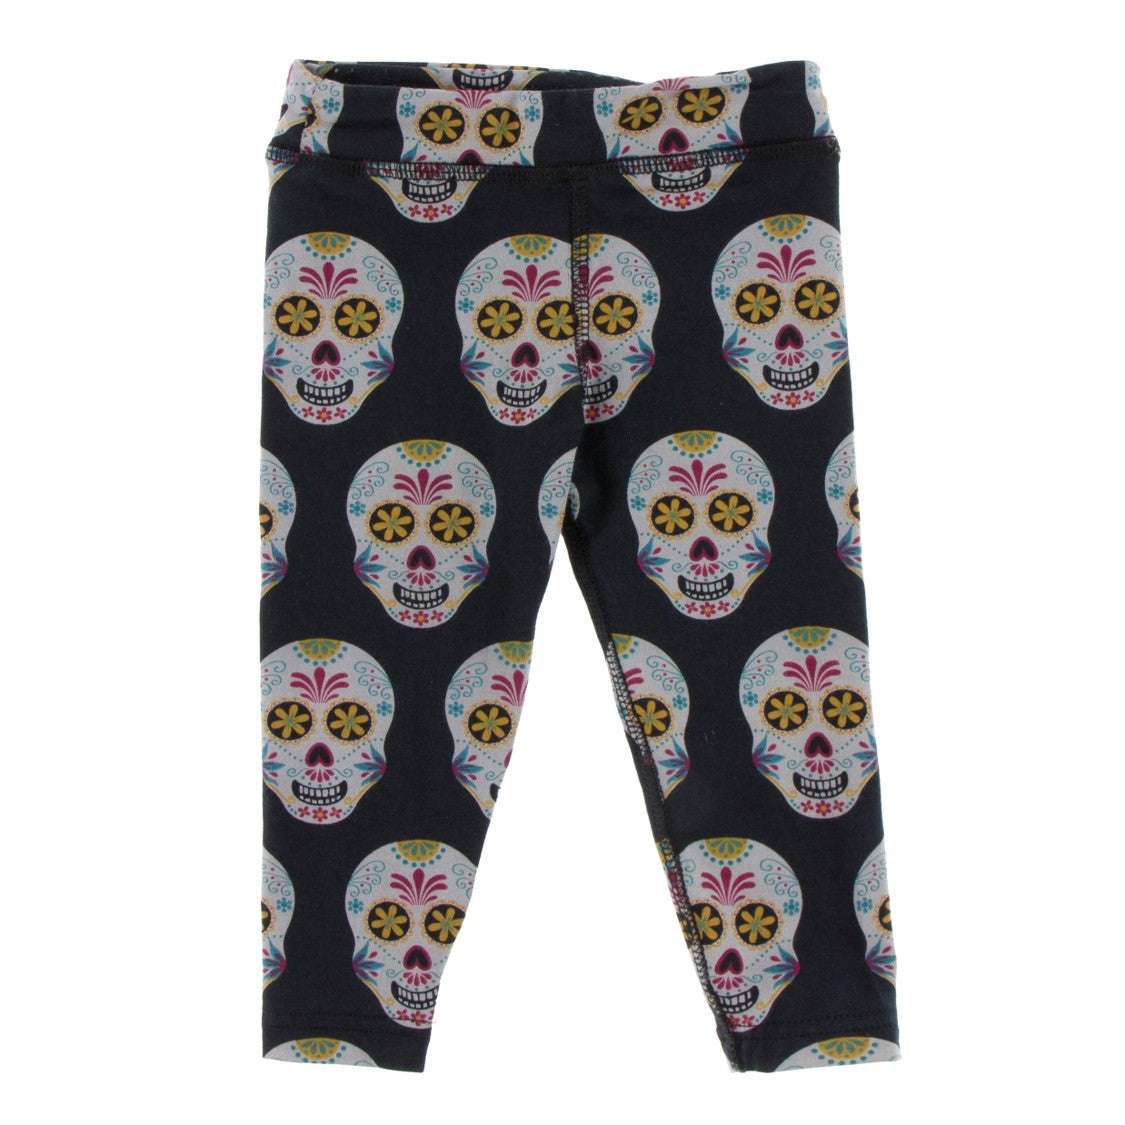 Kickee Pants - Cancun Collection - Performance Leggings – Dia De Los Muertos